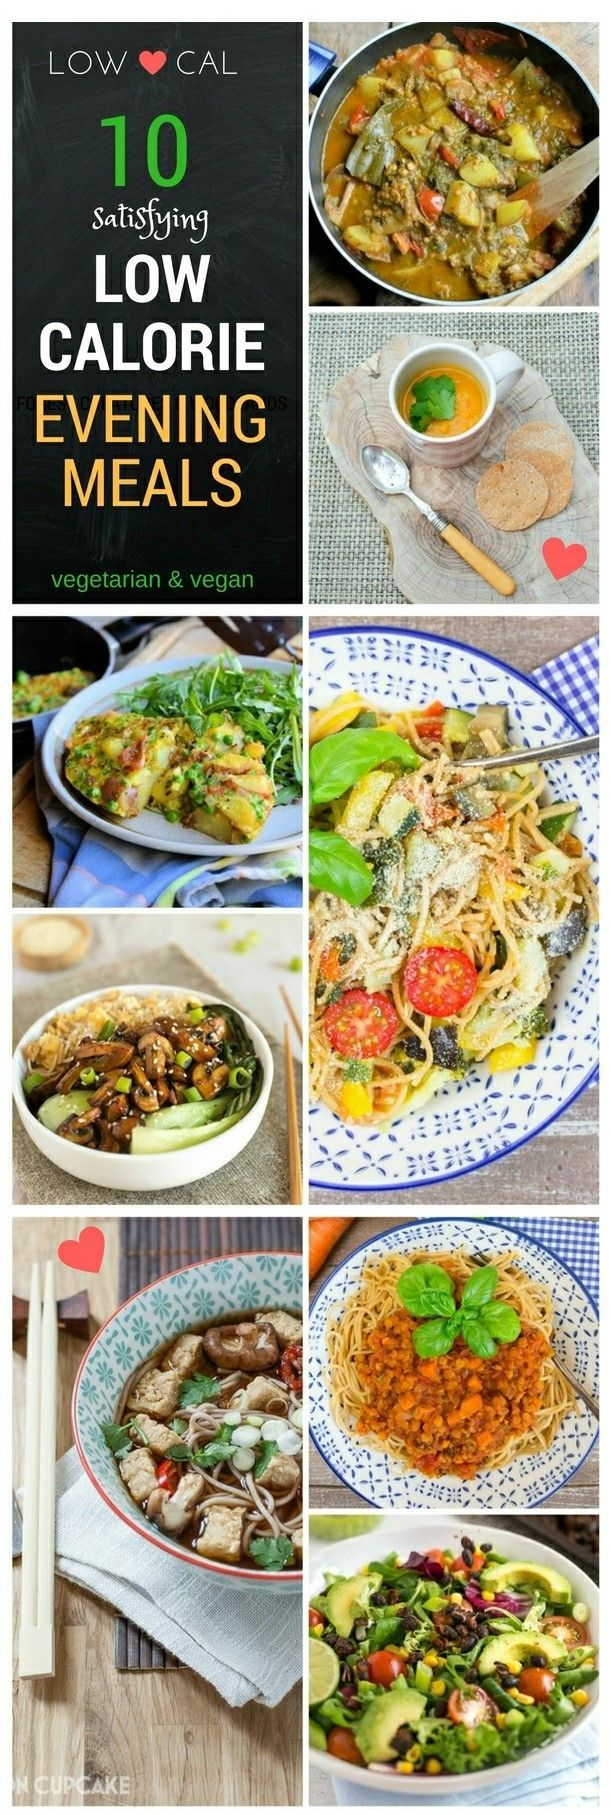 10 low calorie meals that are both tasty and filling. Try swapping some main meals with lower calorie main meals and you will start to notice the weight drop of. It's a slow but steady way of losing weight without noticing. These recipes are all vegetaria